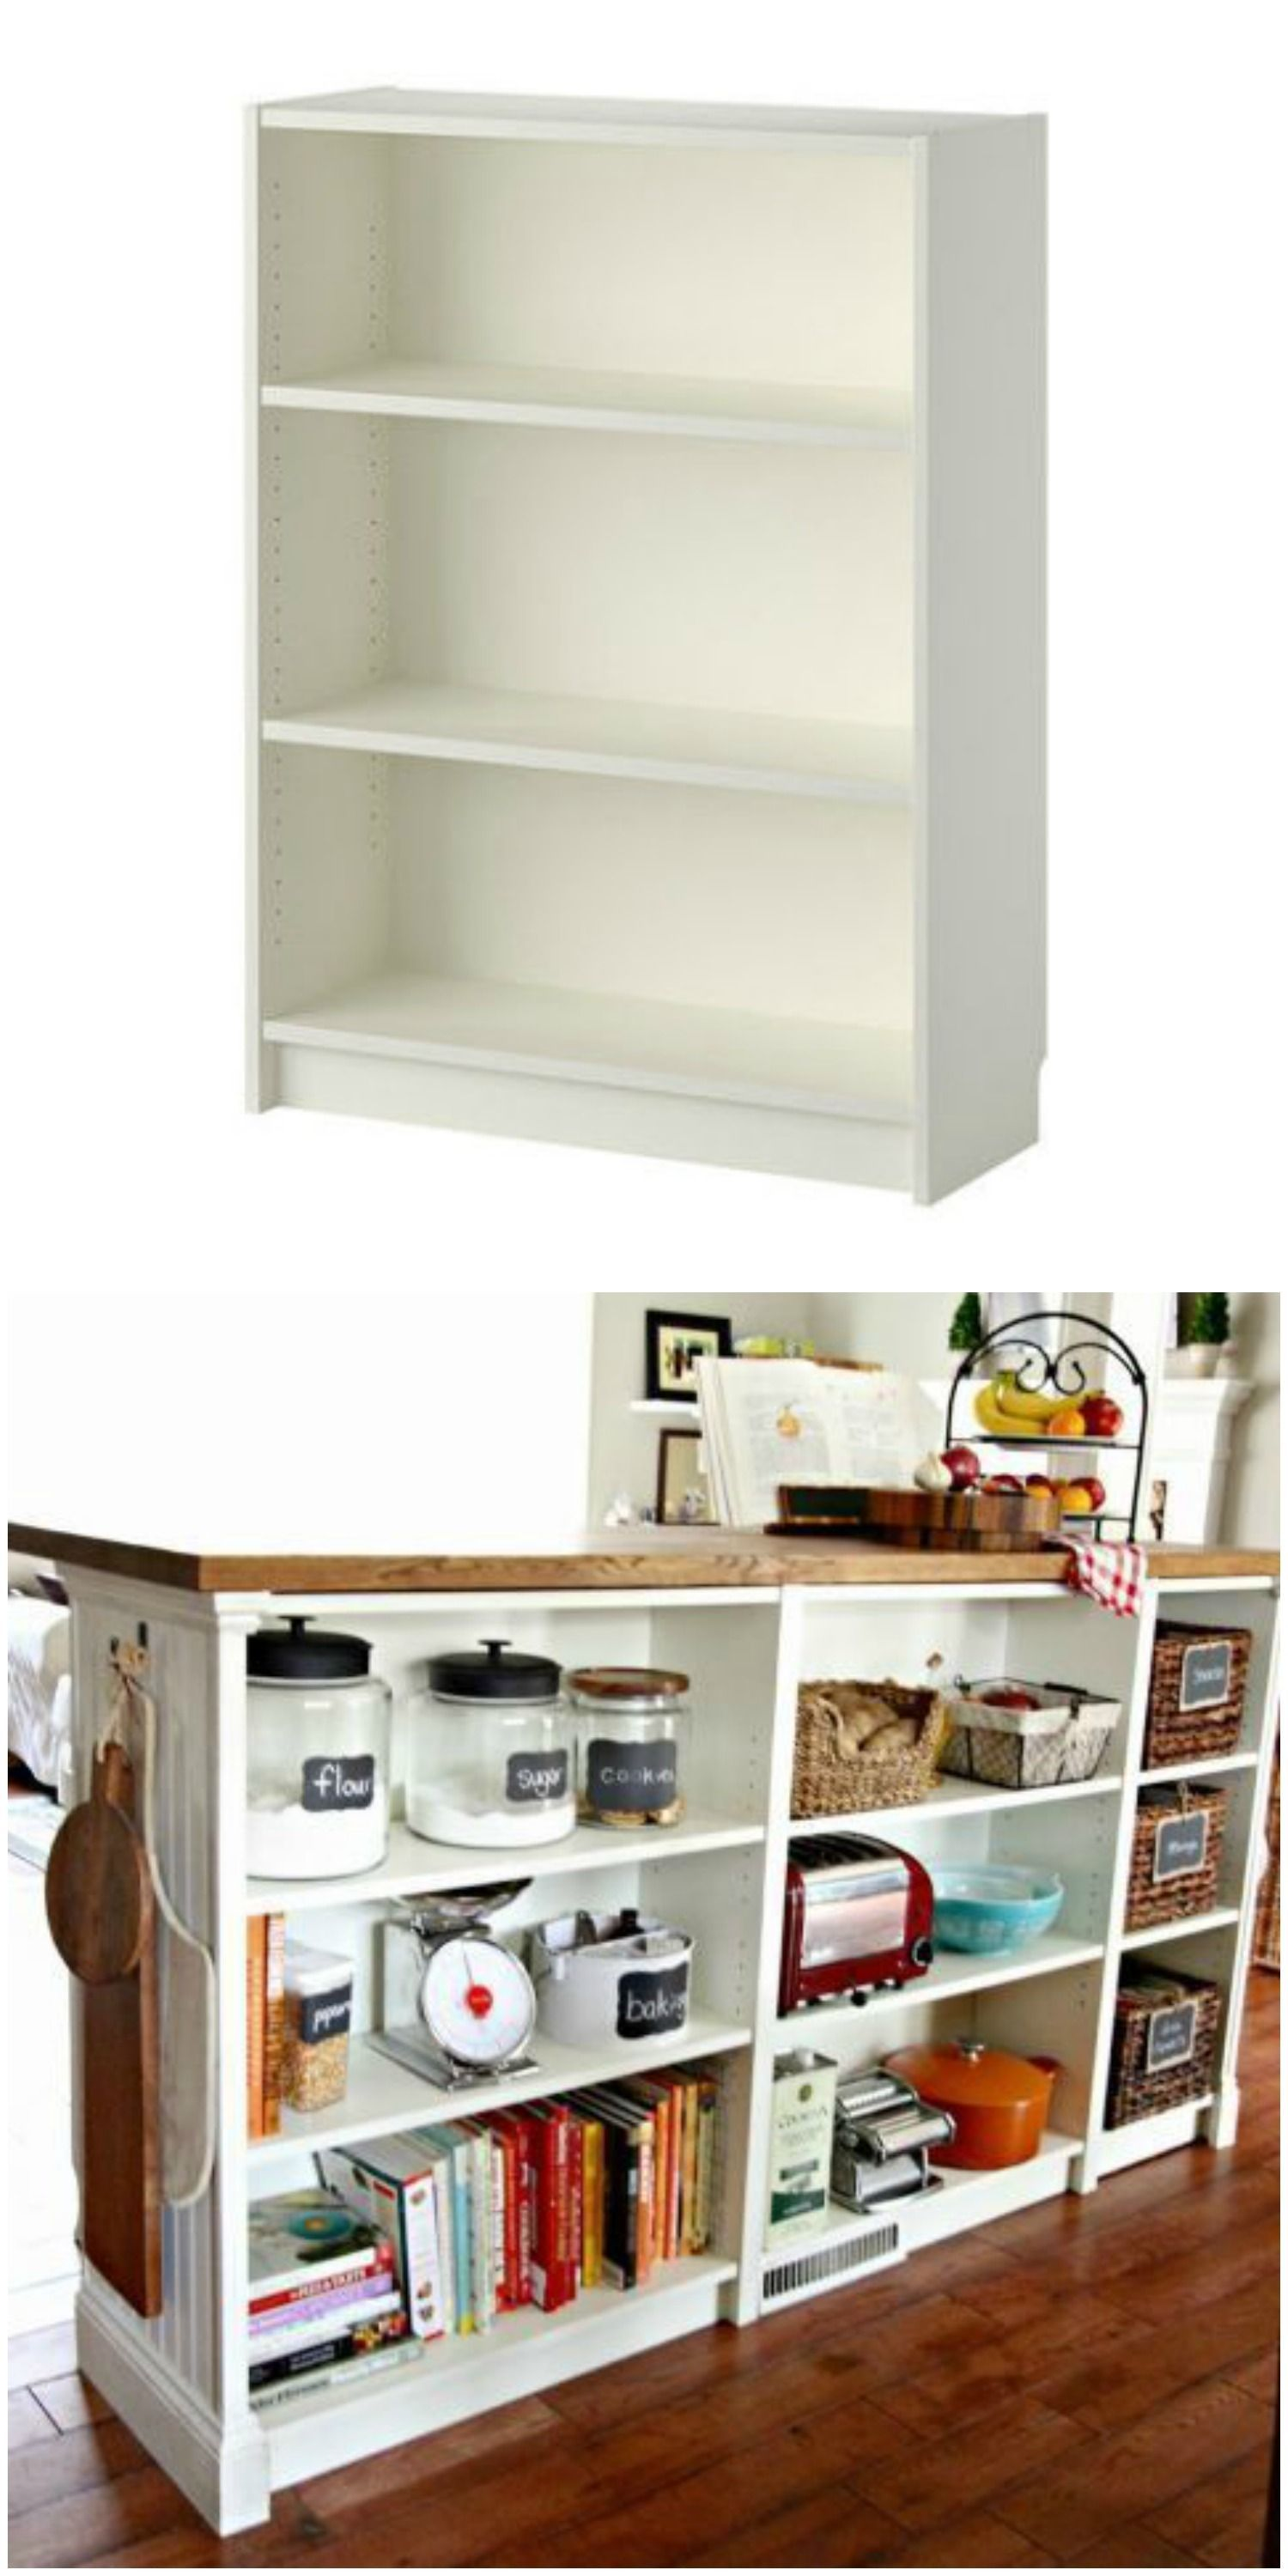 The 21 Coolest IKEA Hacks We\'ve Ever Seen | Ikea hack, Kitchens and ...